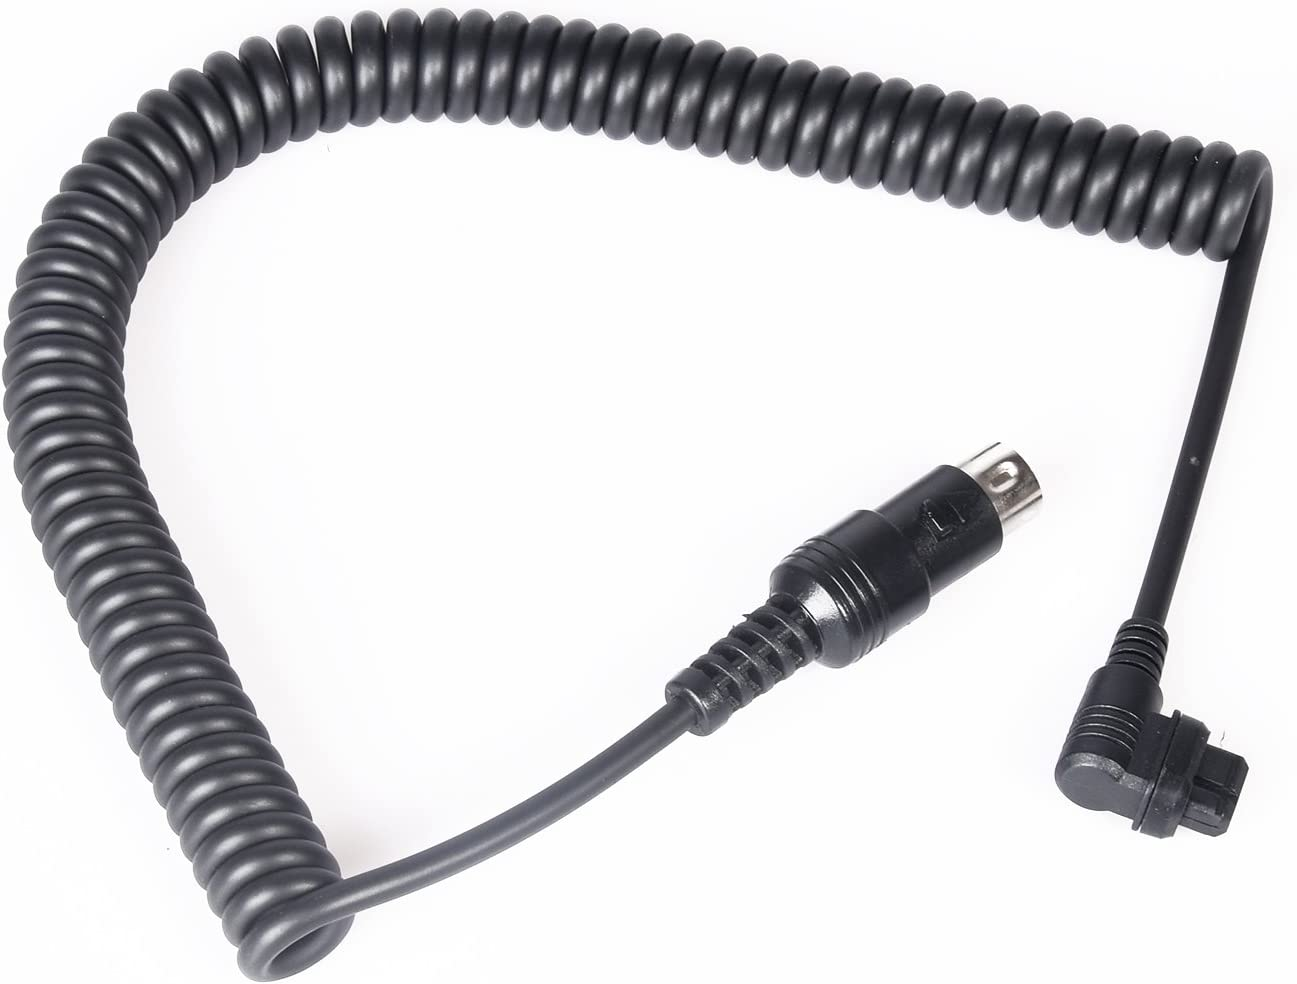 540EZ Godox External Flash Battery Pack Cable for Canon 430EZ 550EX 580EX II and other flash model with same type of input power port. Cannon 580EX